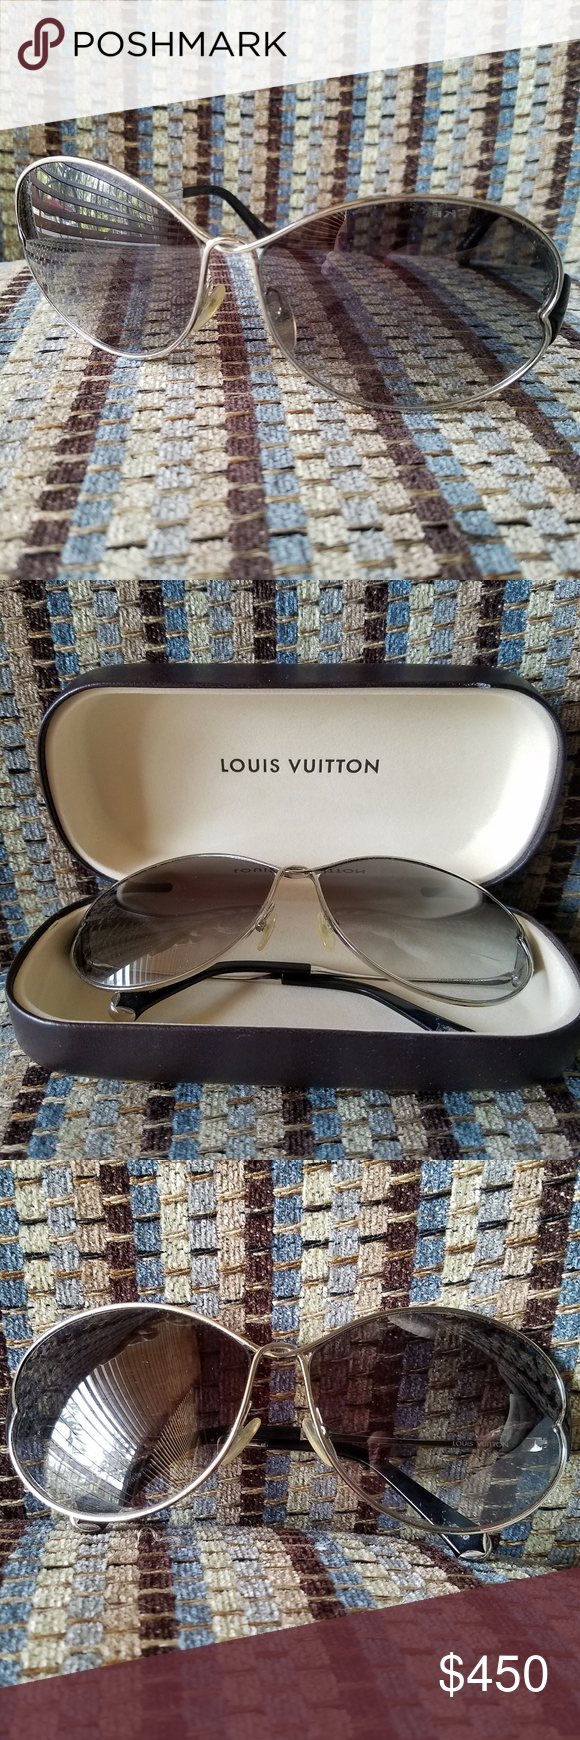 8eca8f260db Louis Vuitton Daisy Sunglasses in silver   black Z0261U - Silver   black  Louis Vuitton Daisy oversize sunglasses with metal frame